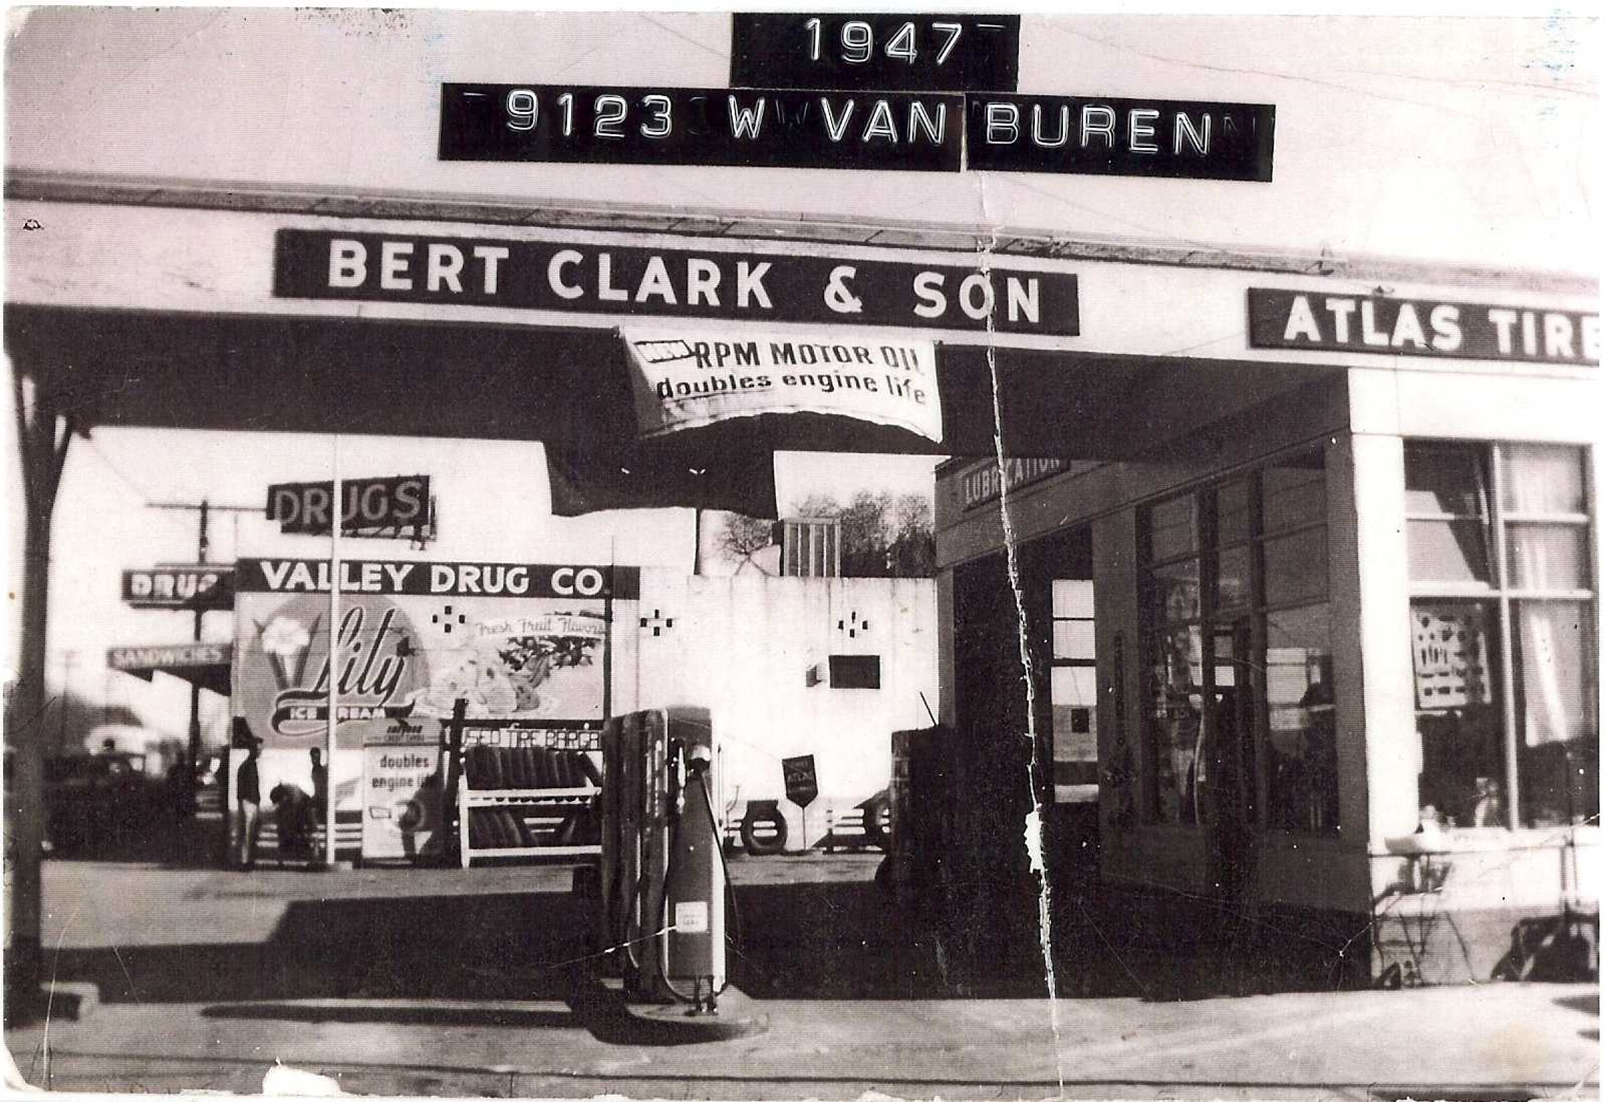 Bert Clark and Son